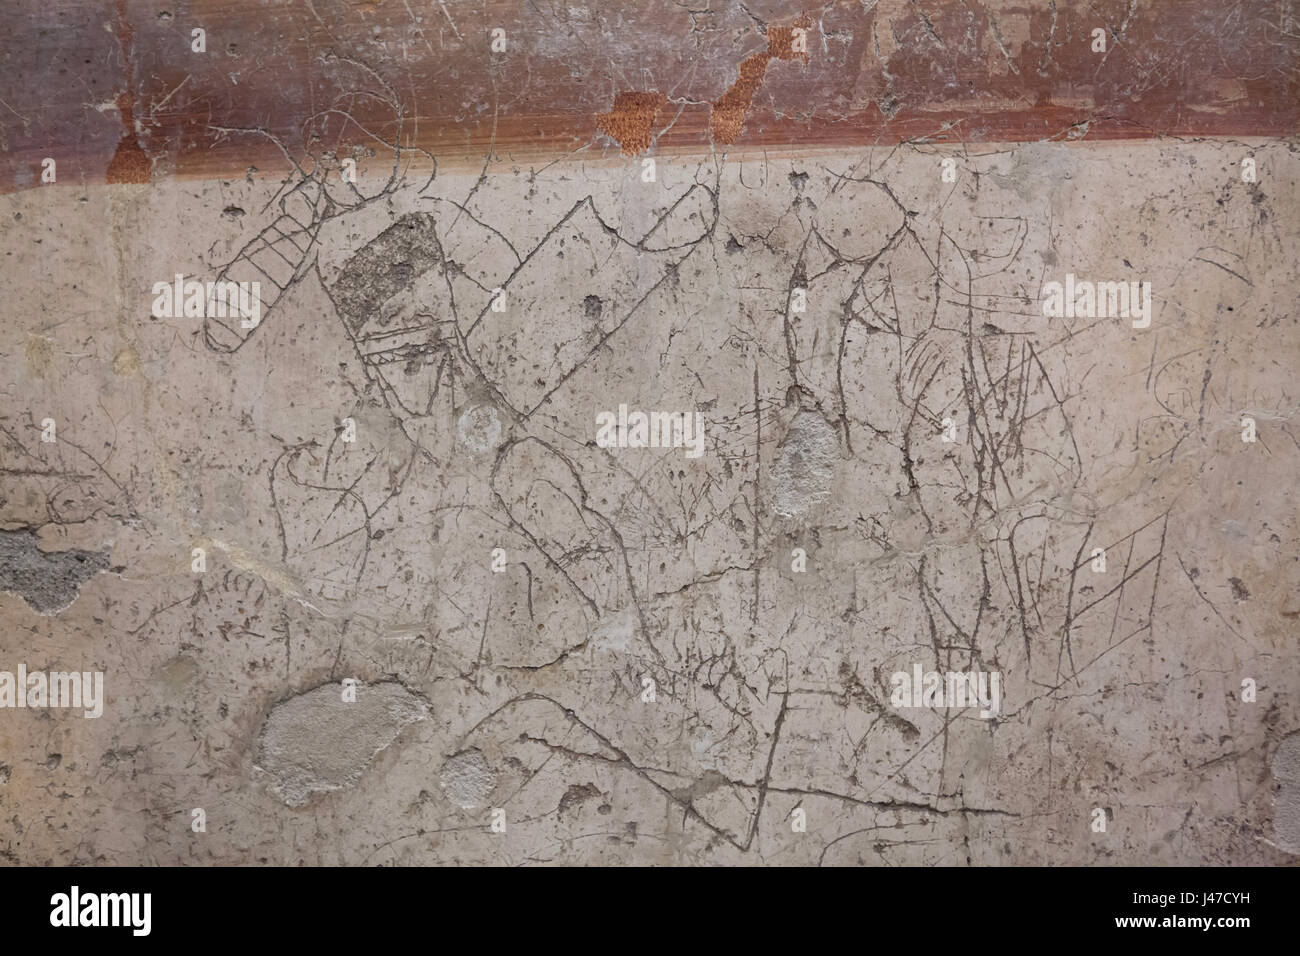 Graffiti Found In A Lupanar Roman Brothel In Pompeii